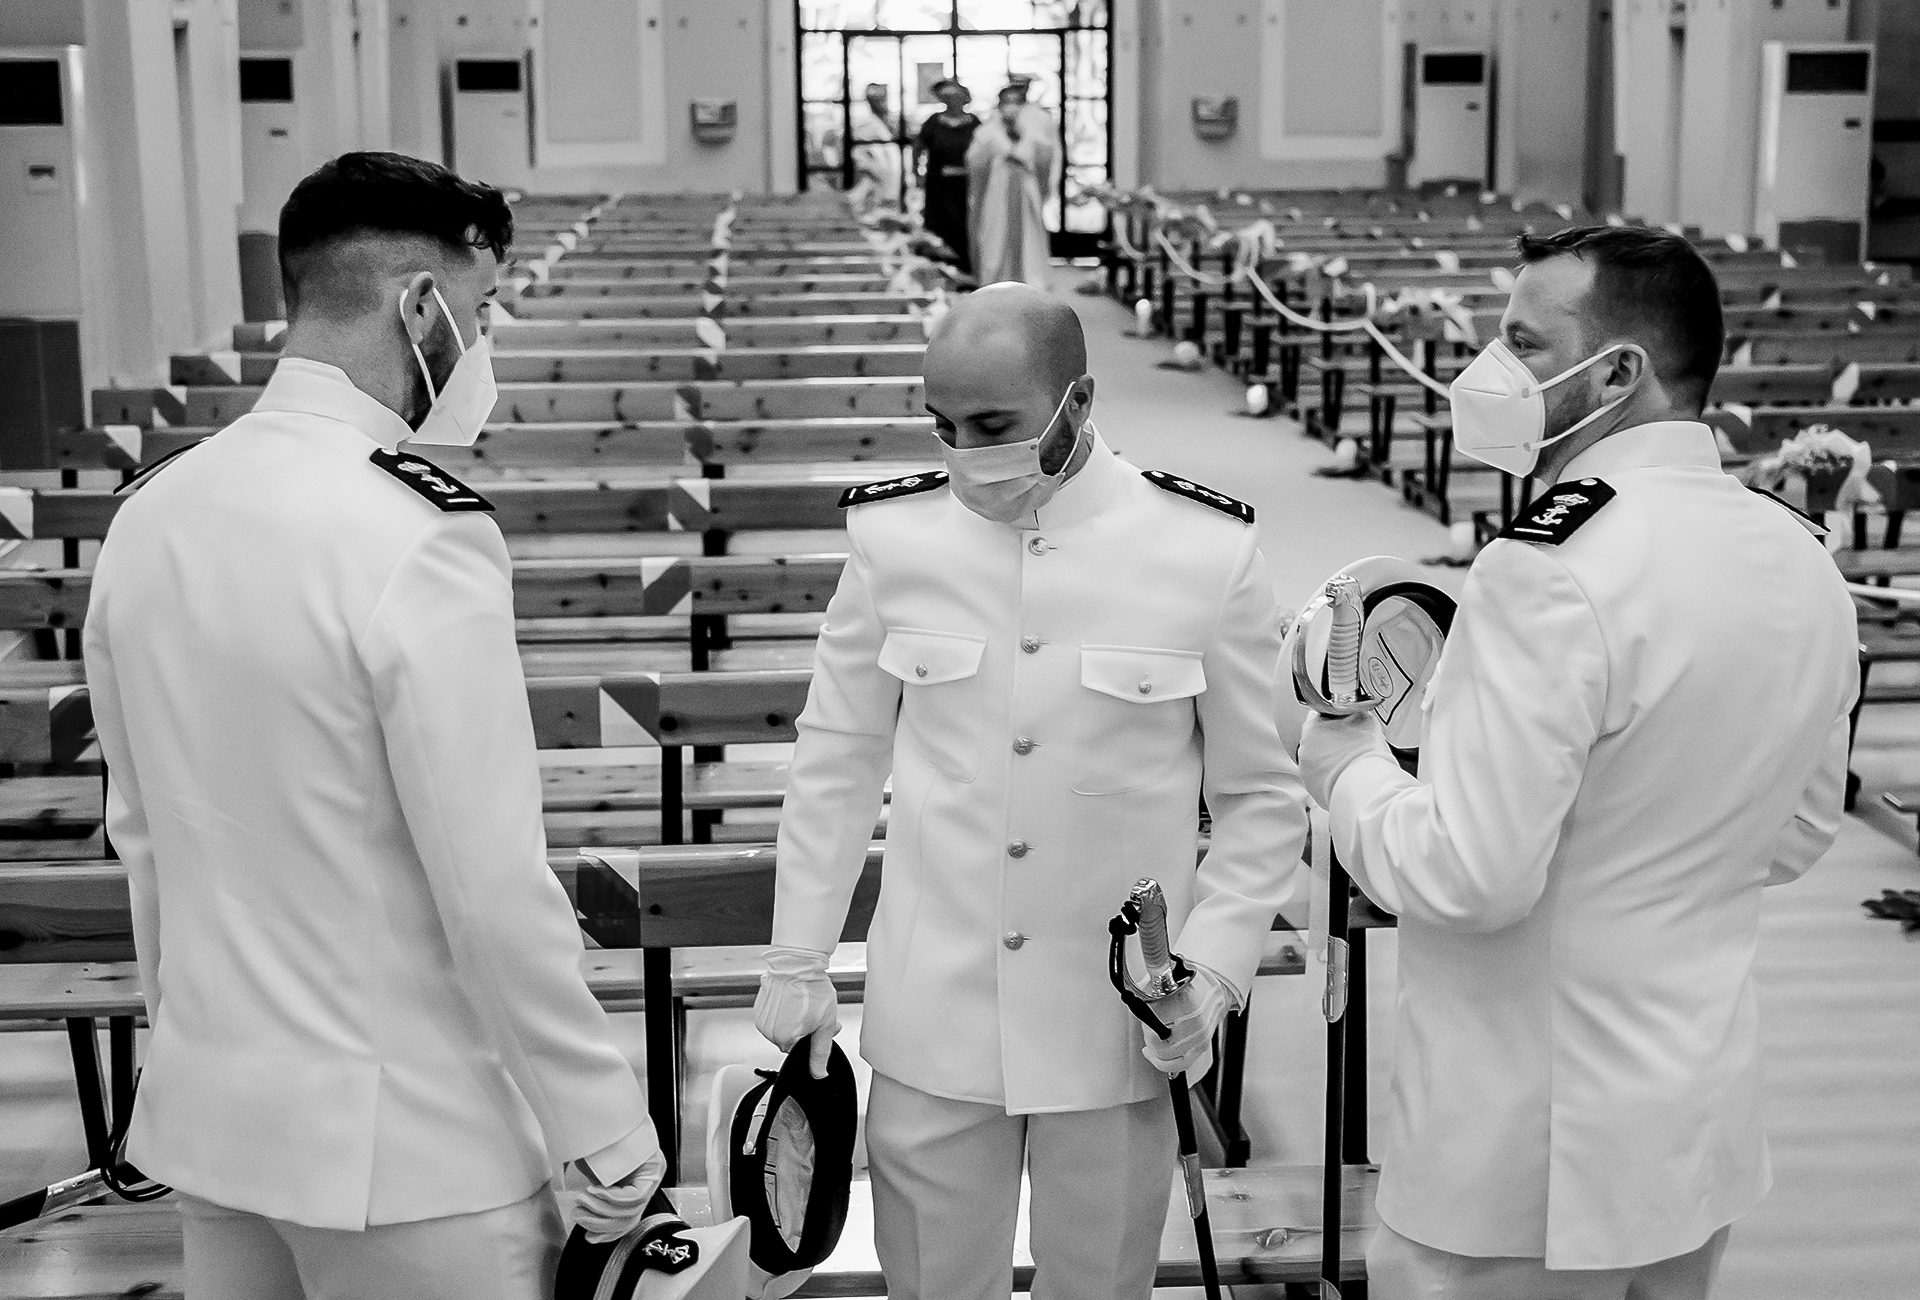 Aguilas COVID elopement photographer | The groom and his military attendants wait for the bride